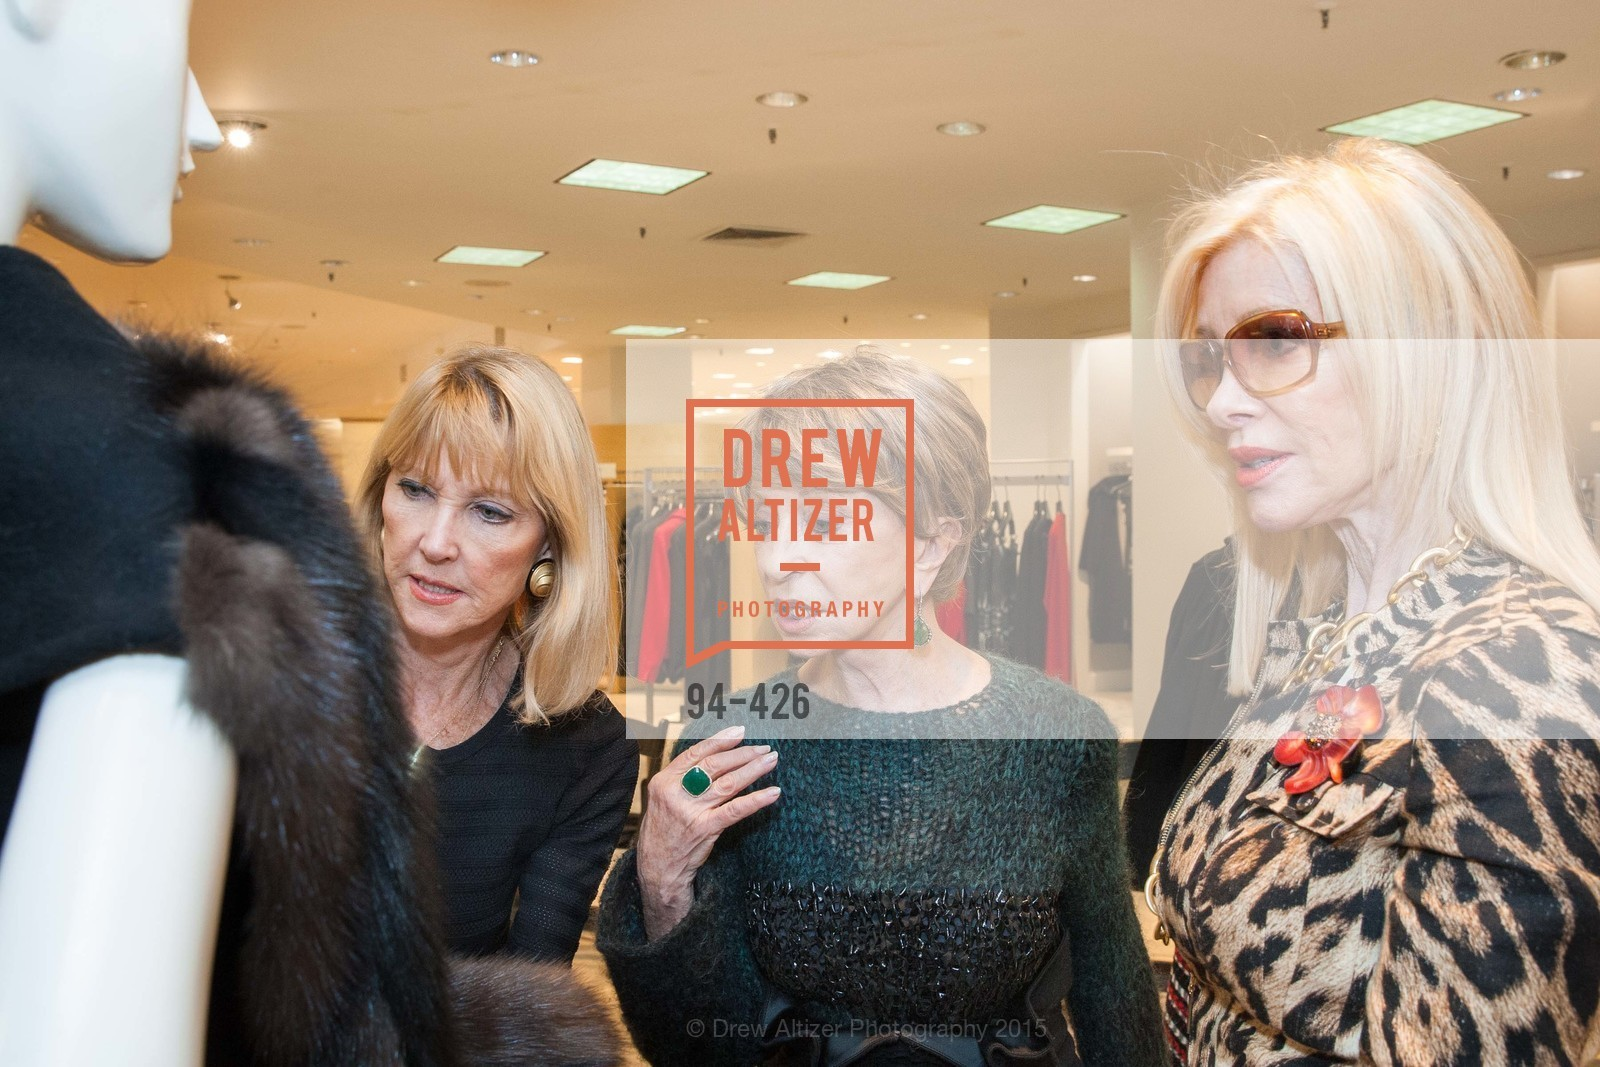 Mary Lou Maier, Roberta Sherman, Pamala Deikel, Rindi at Saks Fur Salon, Saks Fifth Avenue, Fur Salon, October 29th, 2015,Drew Altizer, Drew Altizer Photography, full-service agency, private events, San Francisco photographer, photographer california